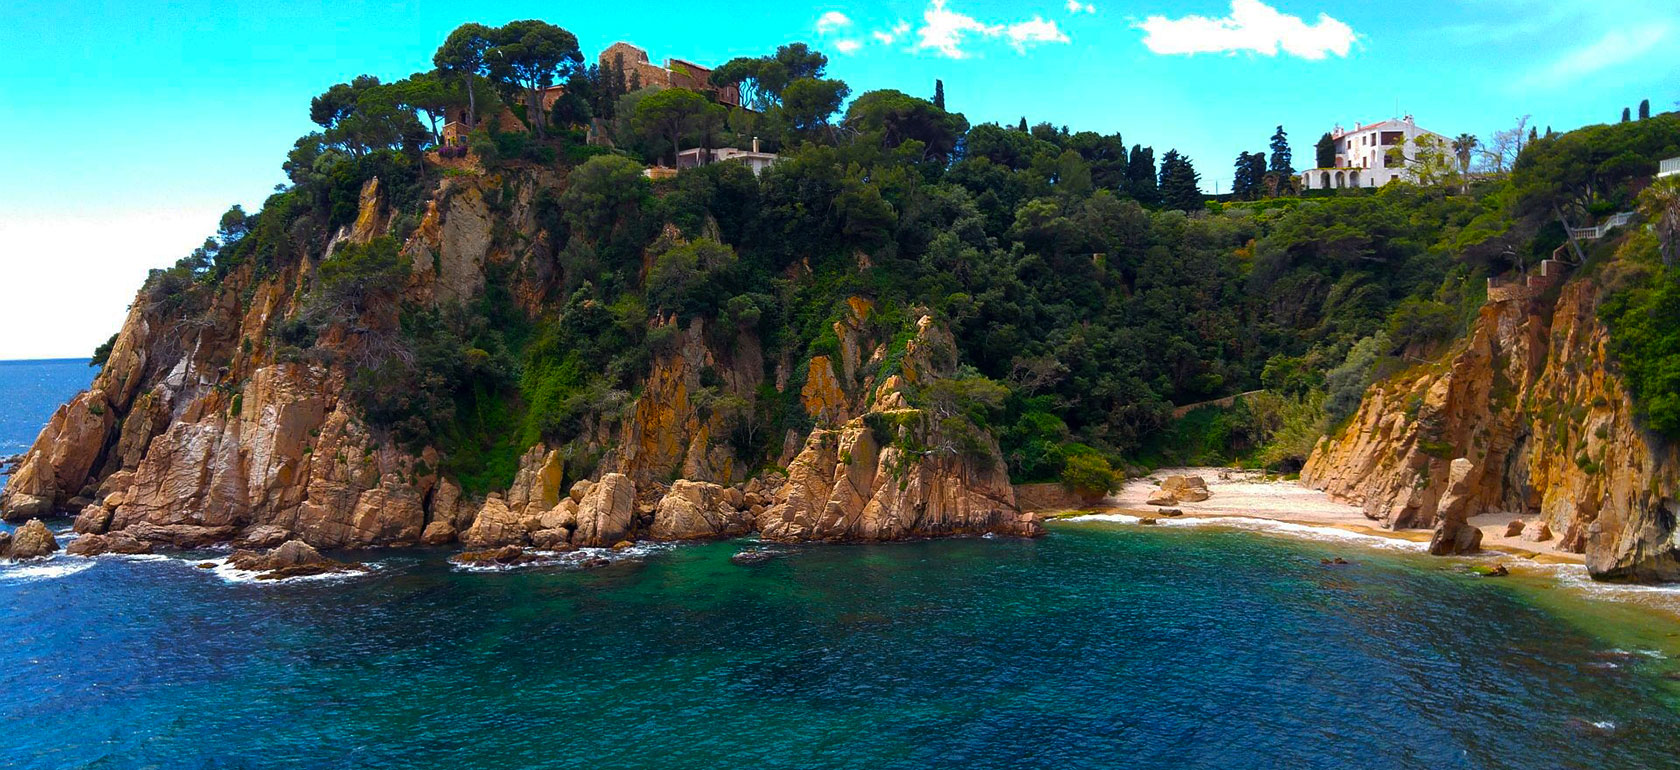 Costa Brava - Half day Tour